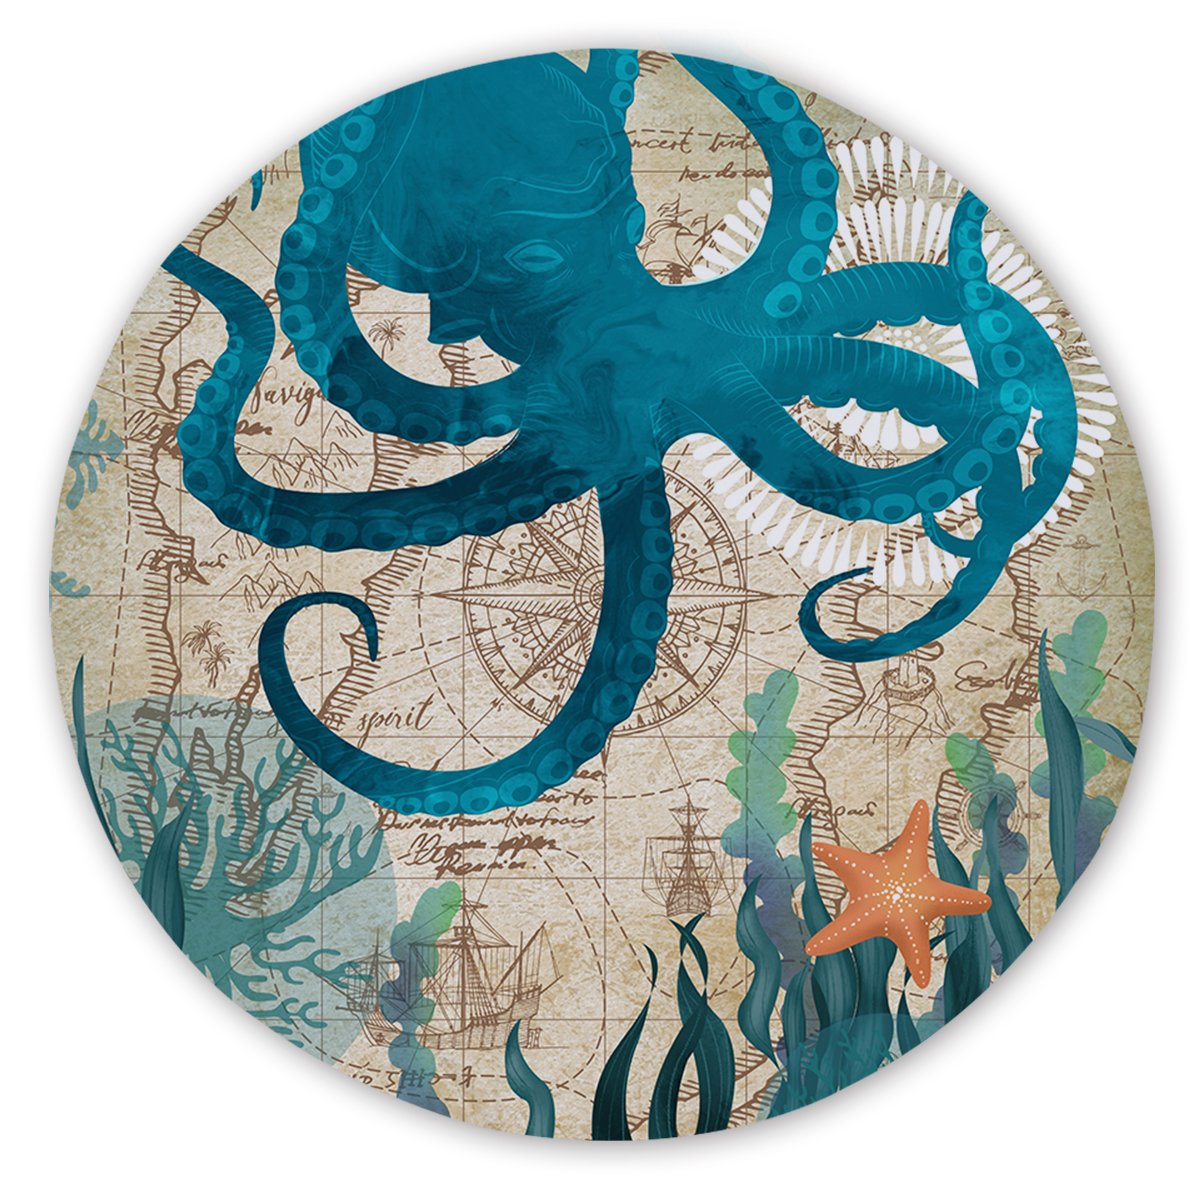 Octopus Love Round Sand-Free Towel